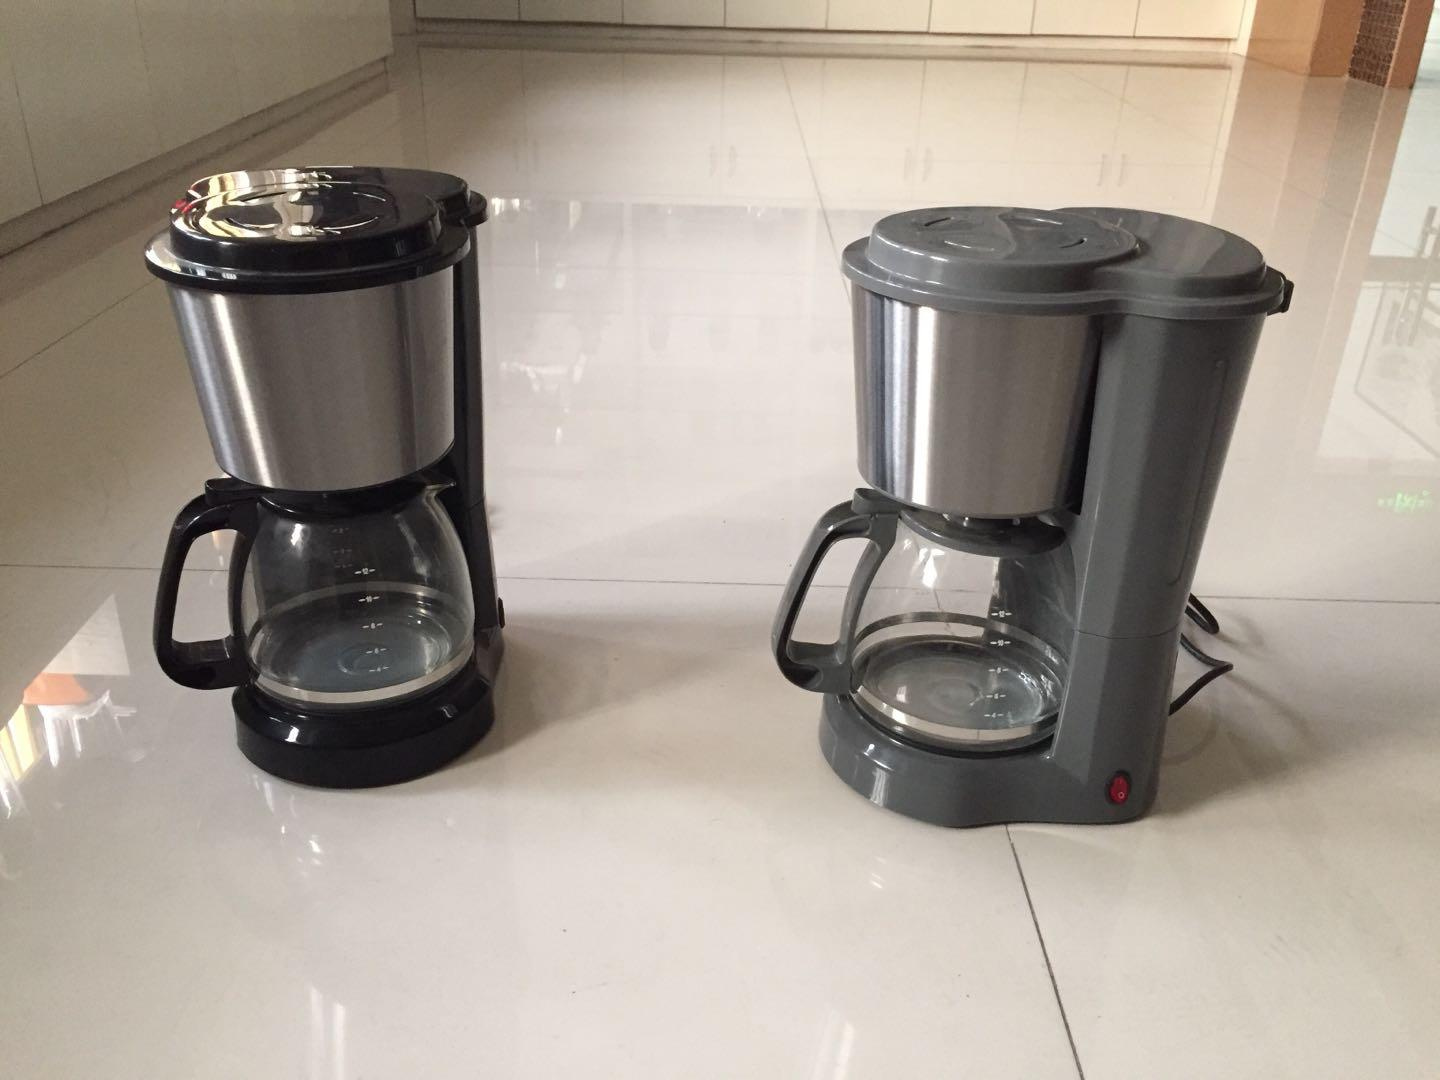 6 cups 8 cups Coffee Maker  Anti dry buring function 2